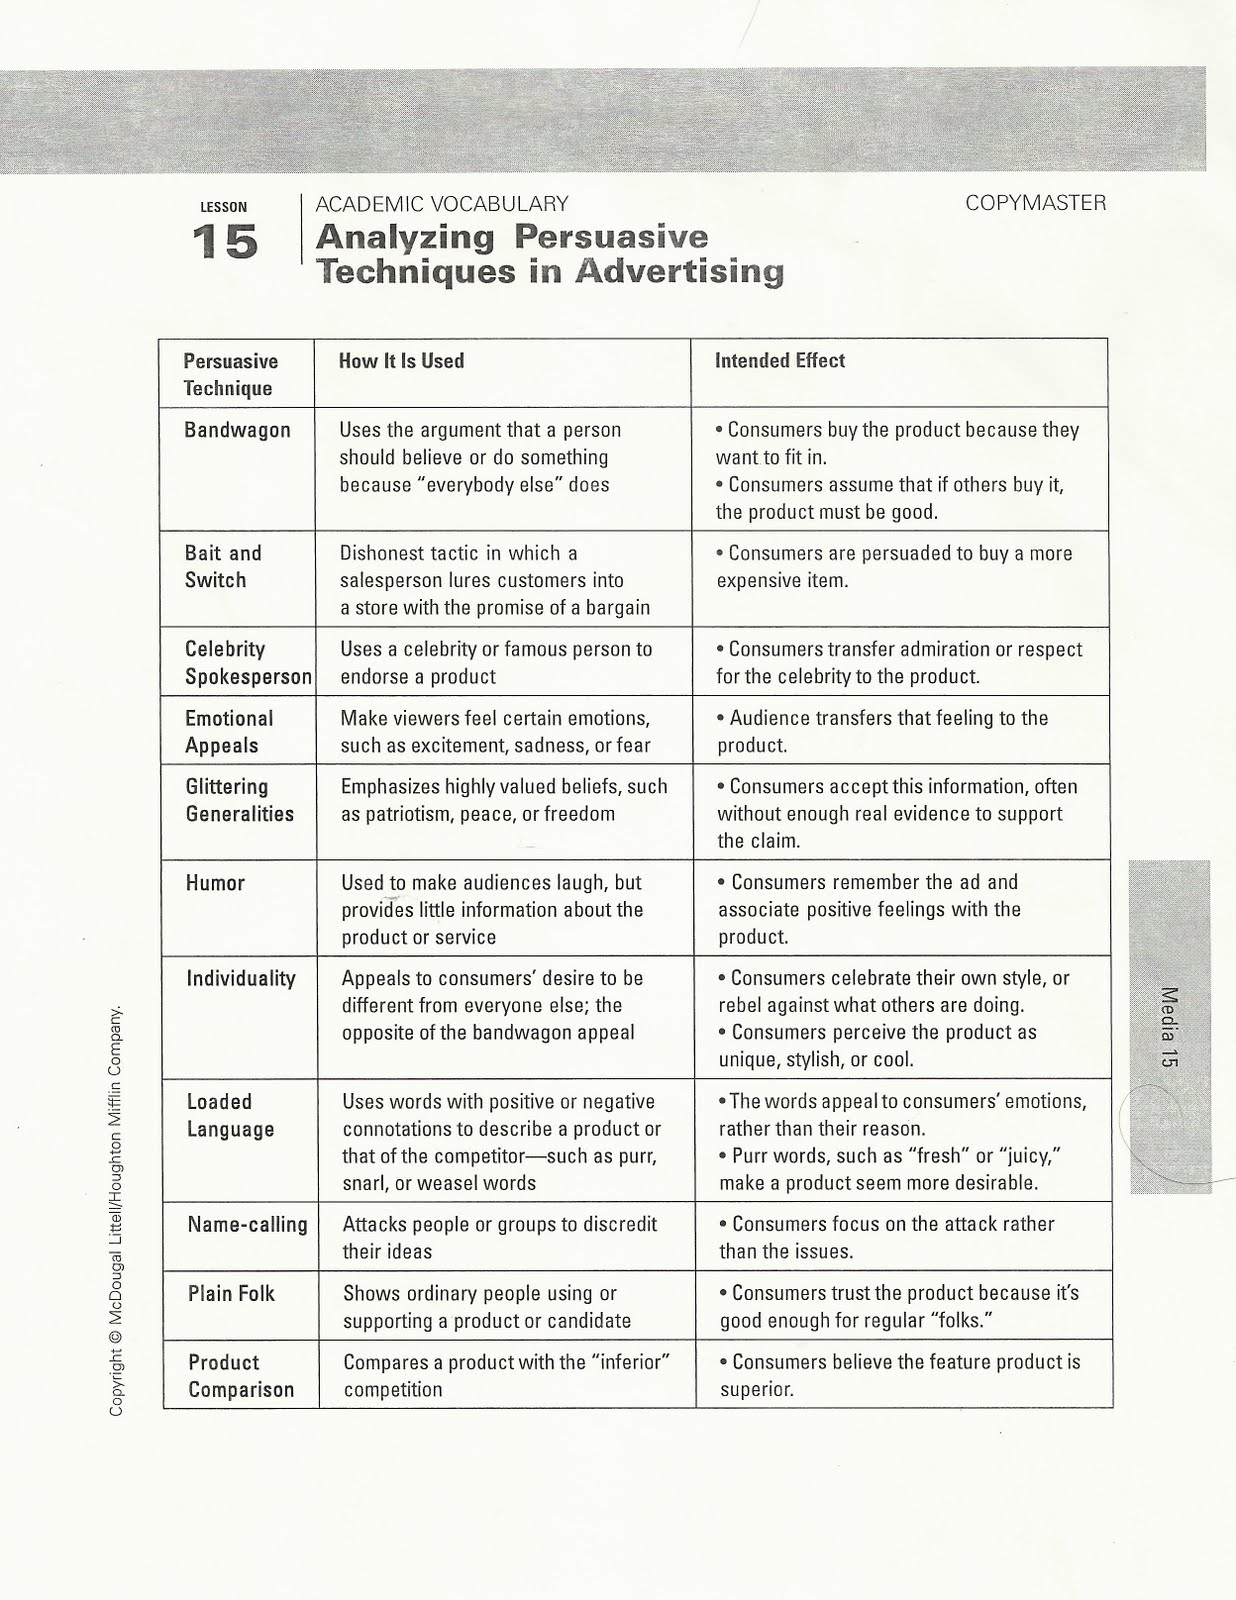 Printables Persuasive Techniques Worksheet persuasive techniques worksheet plustheapp worksheets as well 1 doc